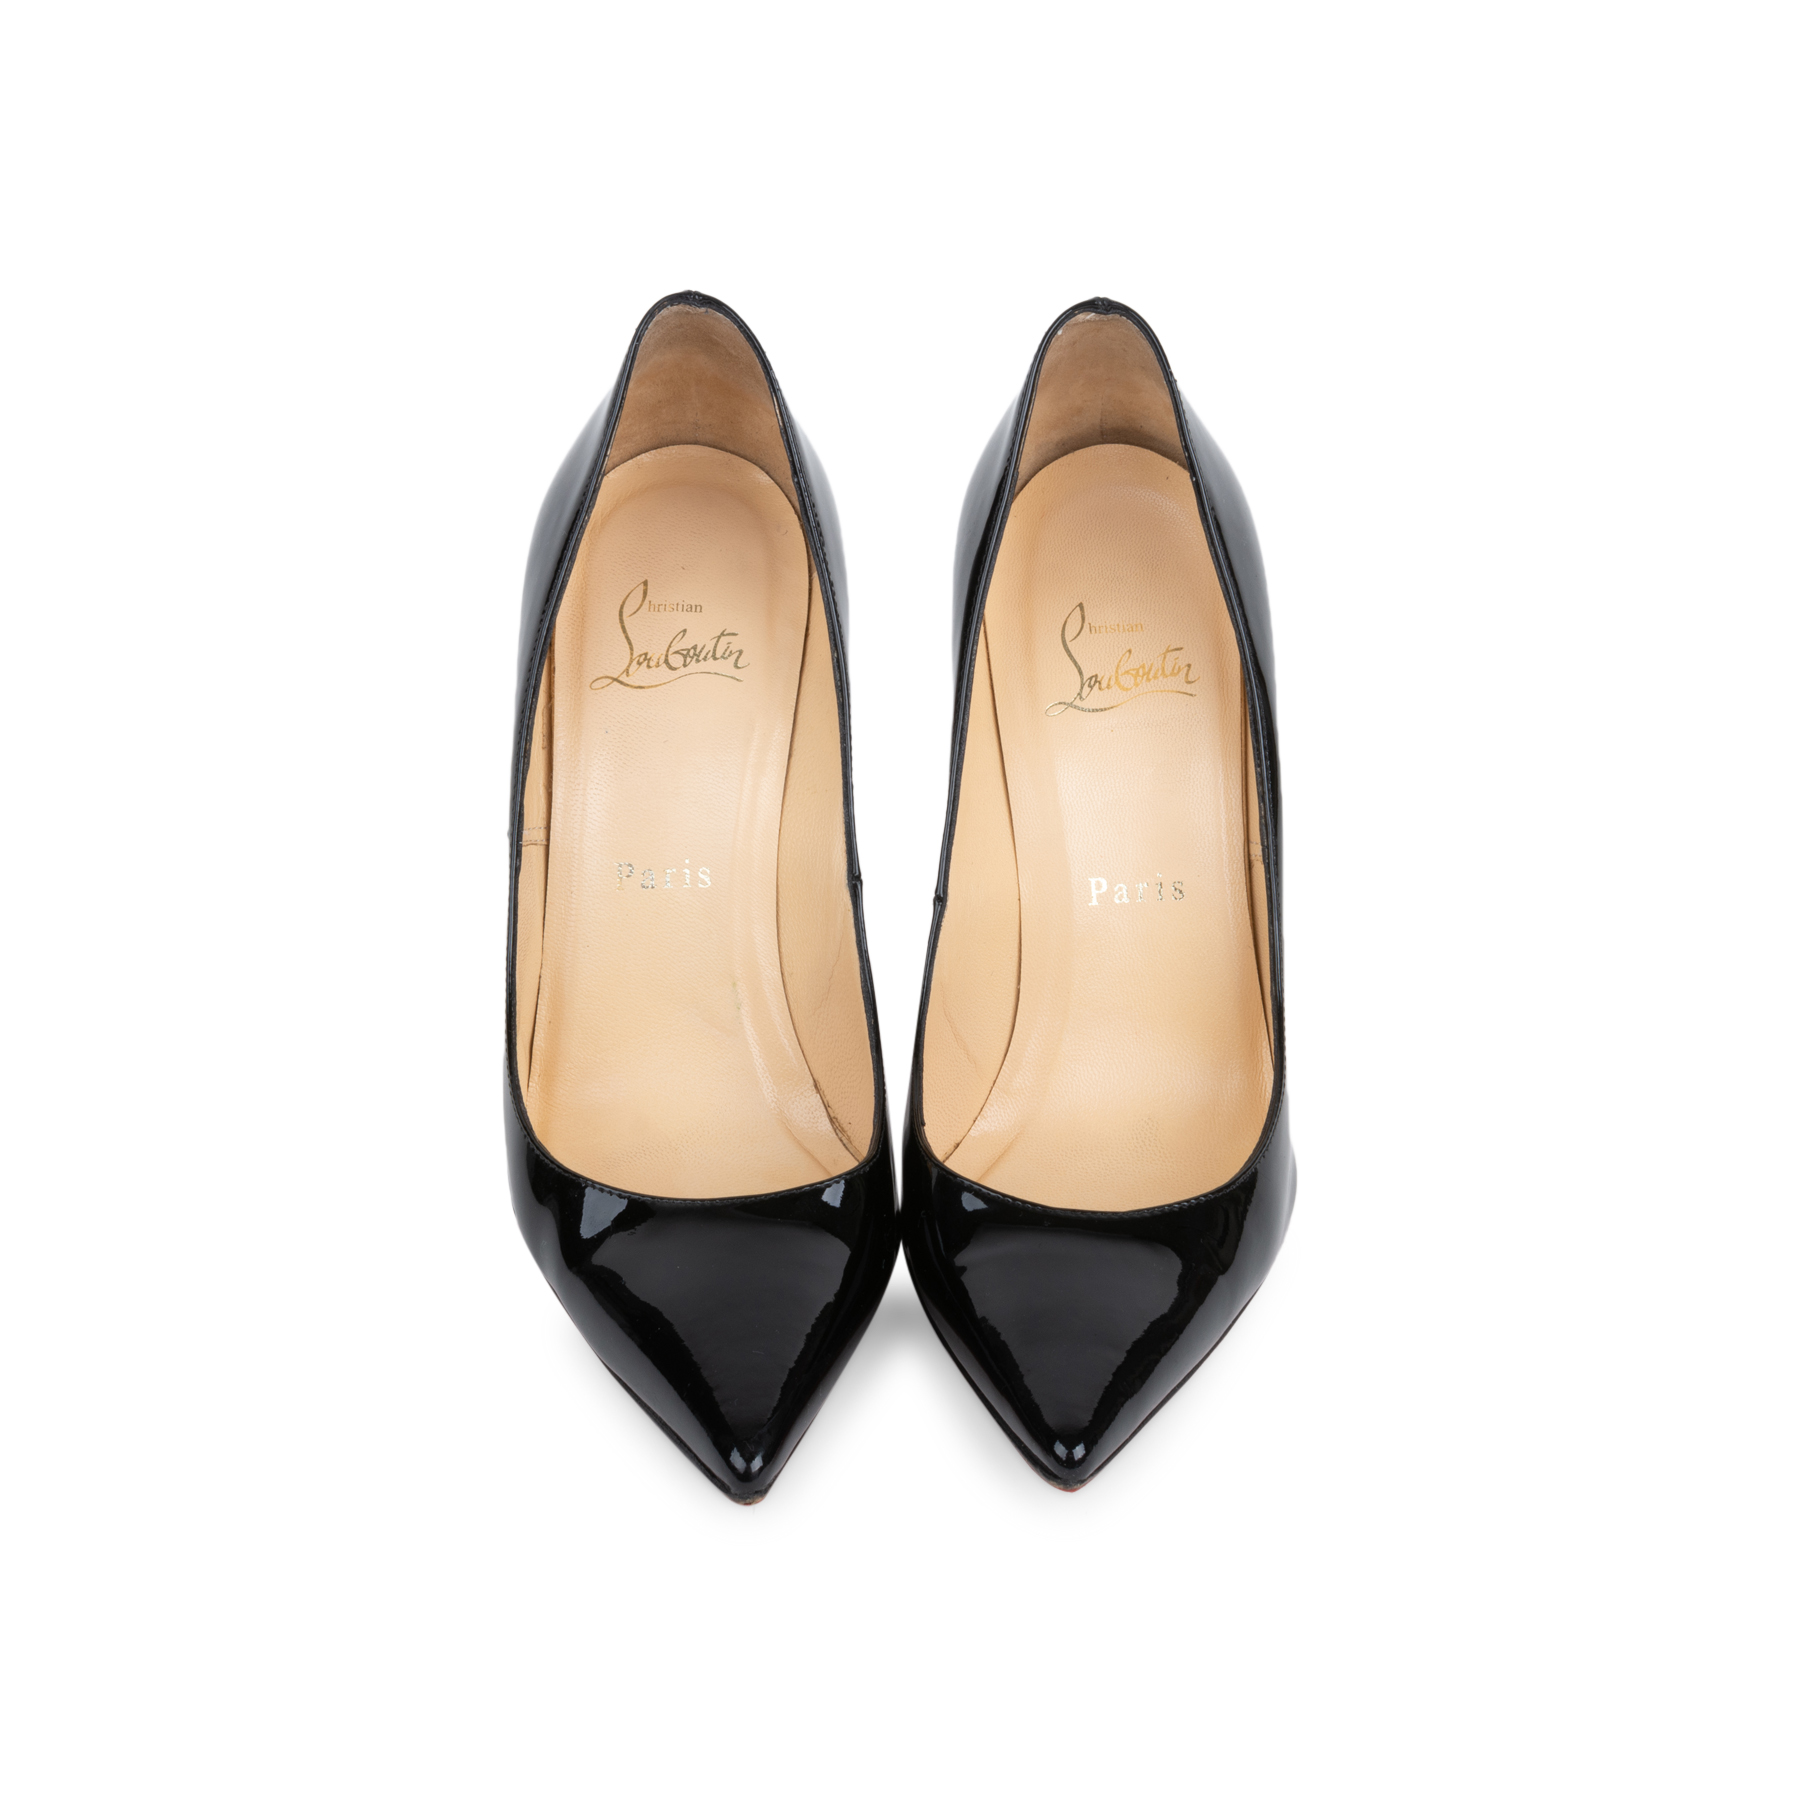 a700befc1e4f Authentic Second Hand Christian Louboutin Decollete 554 100 Patent Pumps  (PSS-566-00093)